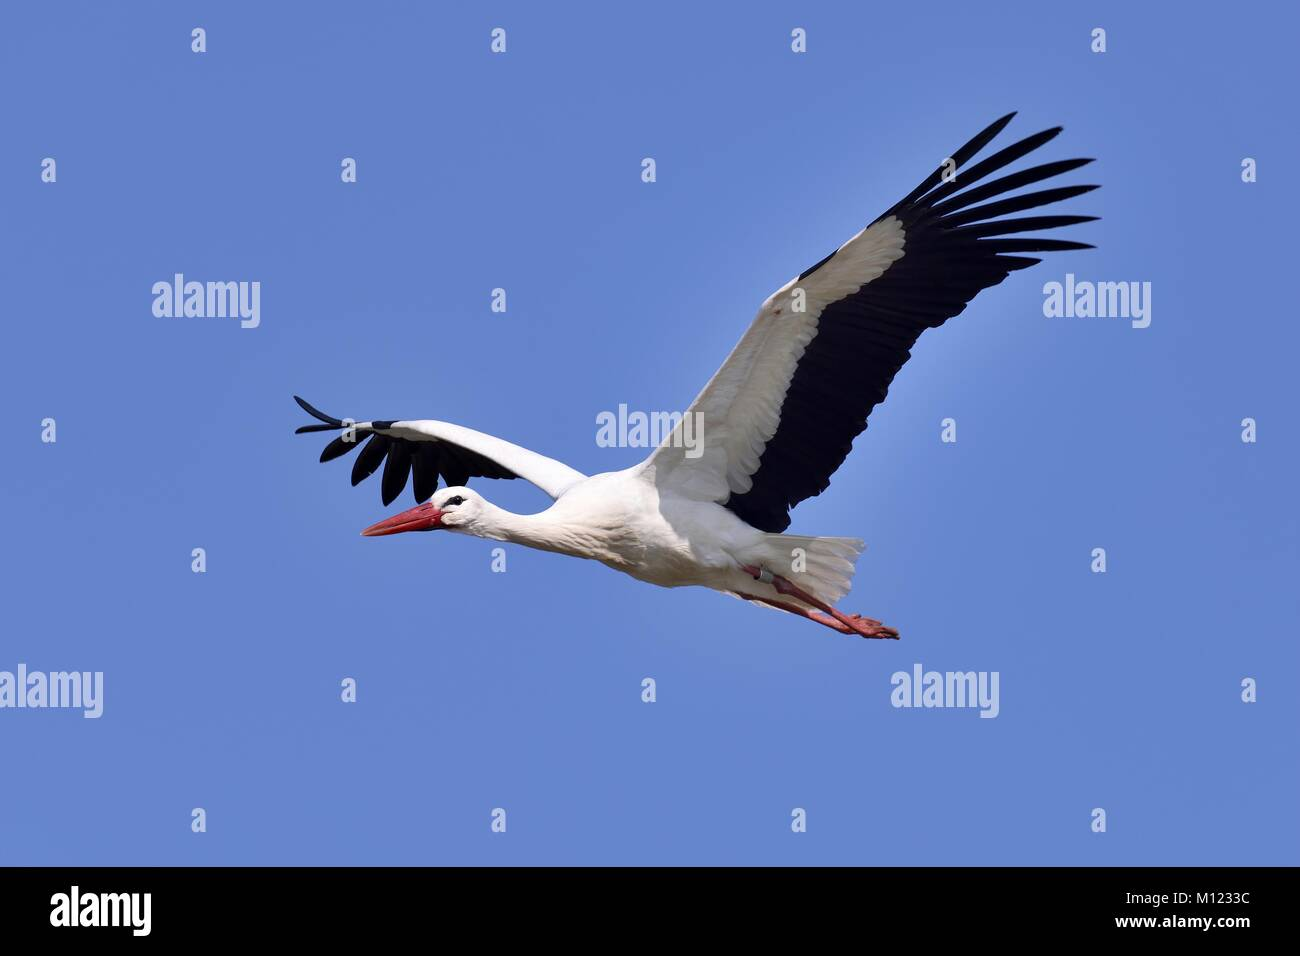 White stork (Ciconia ciconia),adult,flying,Canton of Aargau,Switzerland - Stock Image